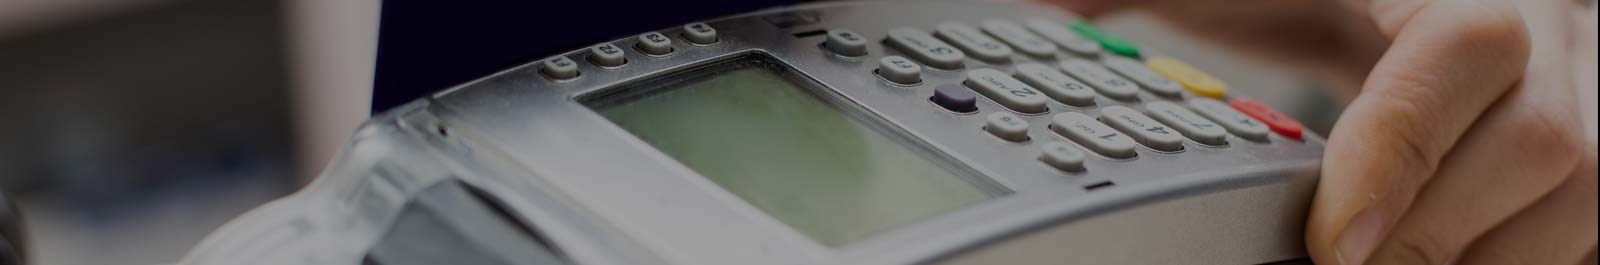 Header image - closeup of point of sale device in use